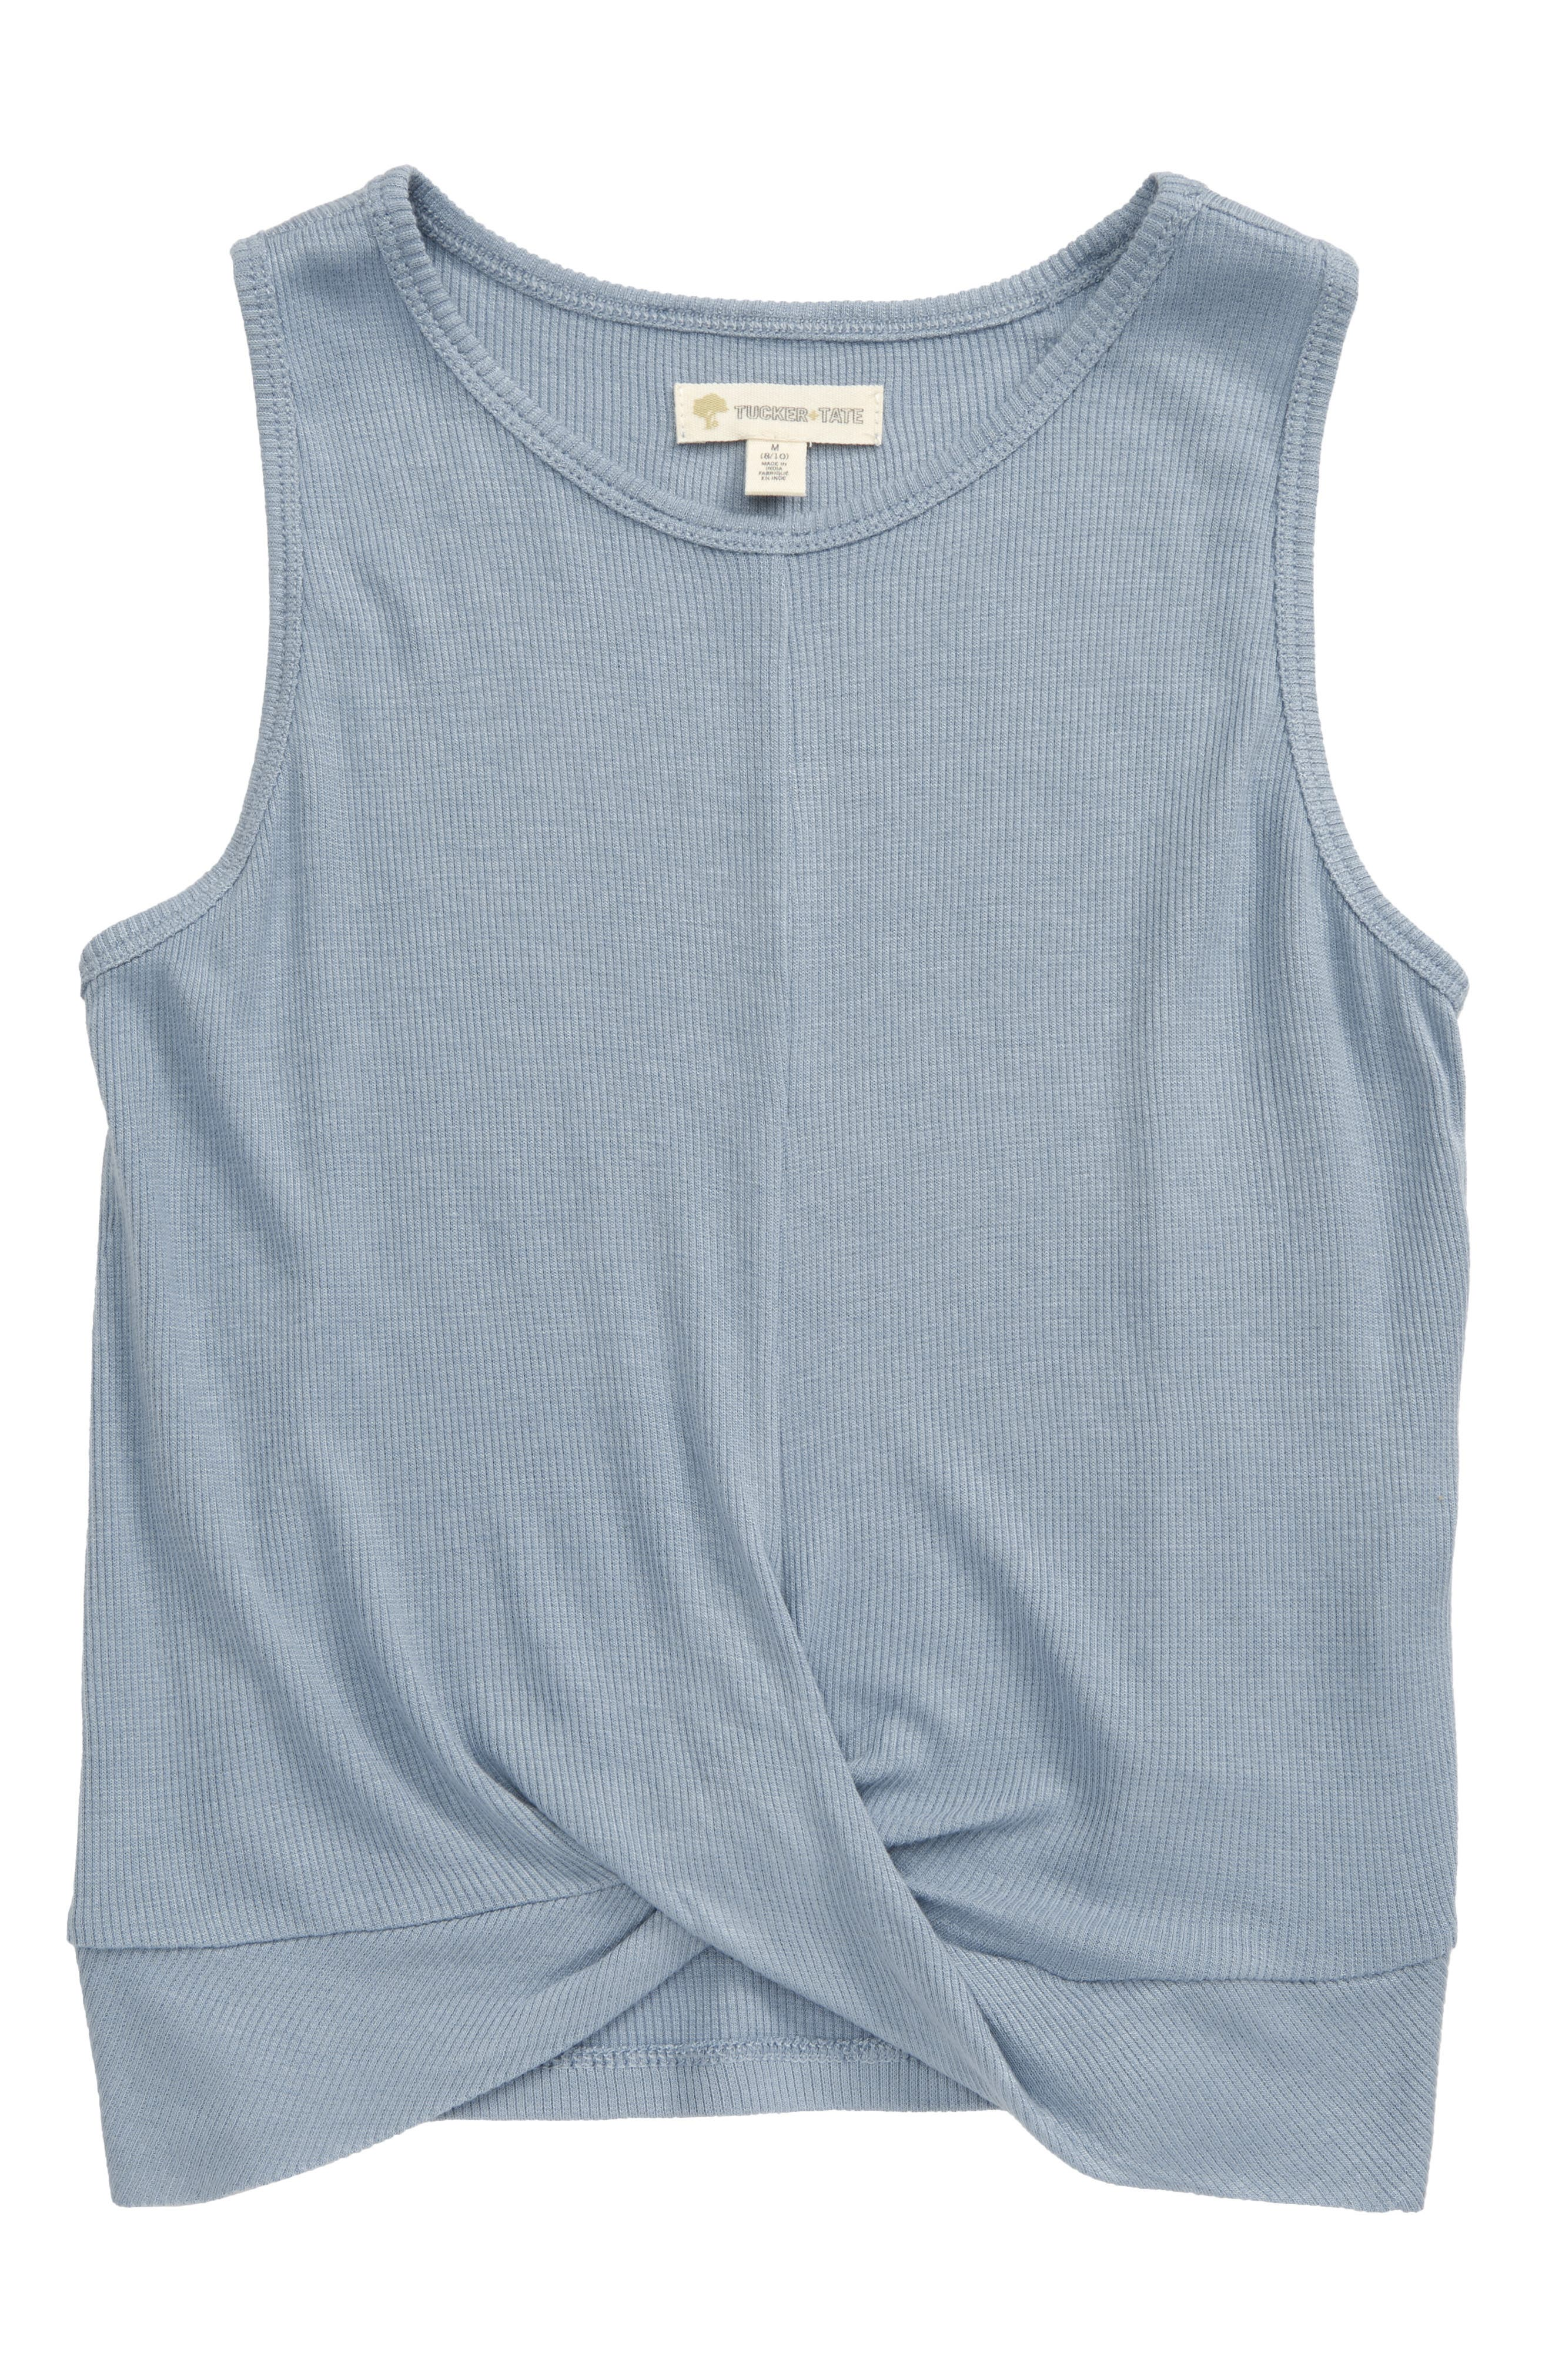 A cute crossover front brings trend-savvy style to a supersoft ribbed tank. Style Name: Tucker + Tate Kids\\\' Crossover Ribbed Tank (Big Girls). Style Number: 5778059 3. Available in stores.